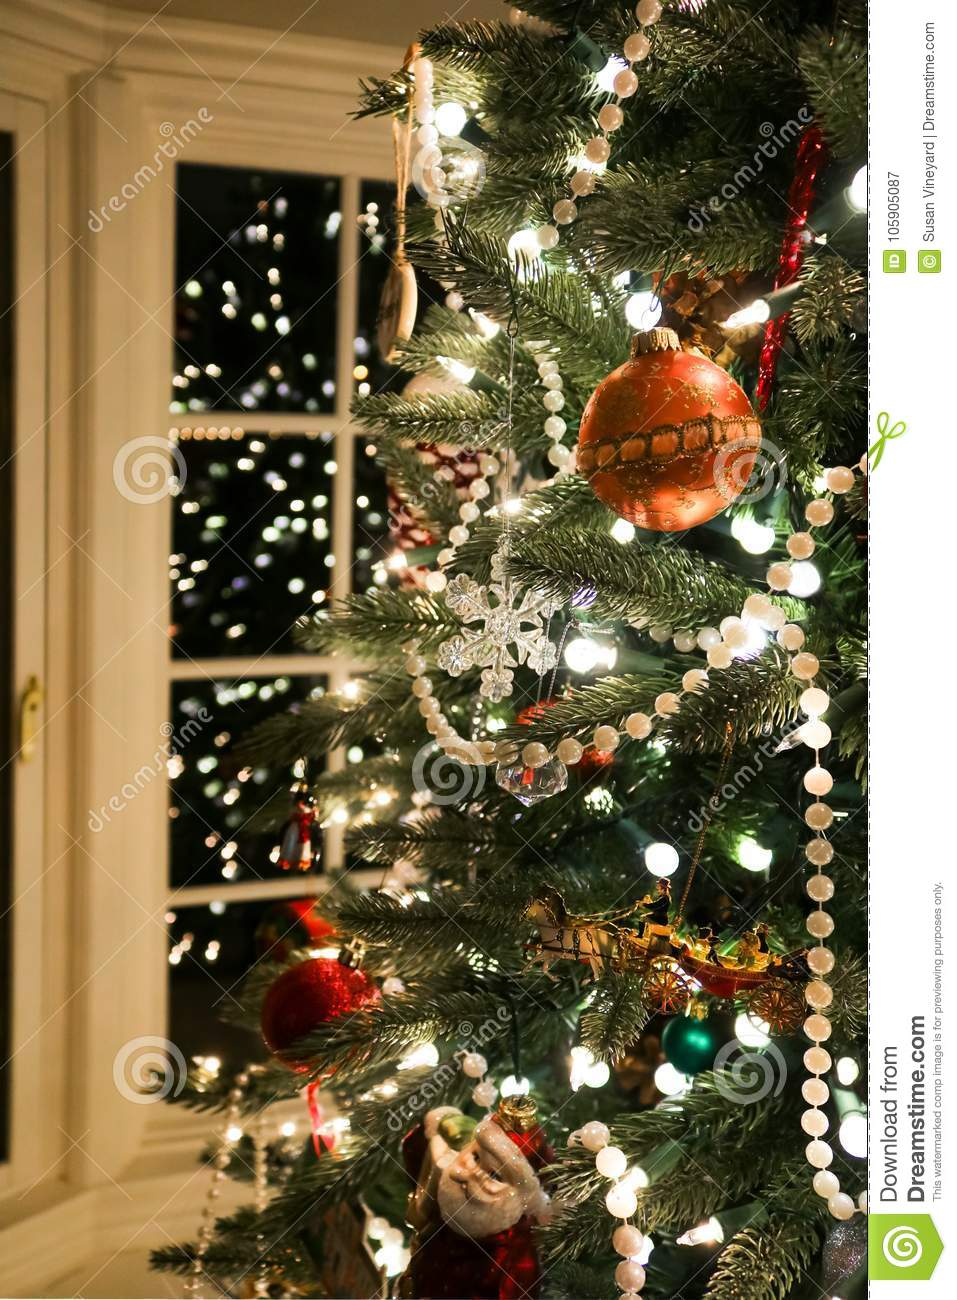 An Old Fashioned Christmas Tree Trimmed With Pearls And An ...